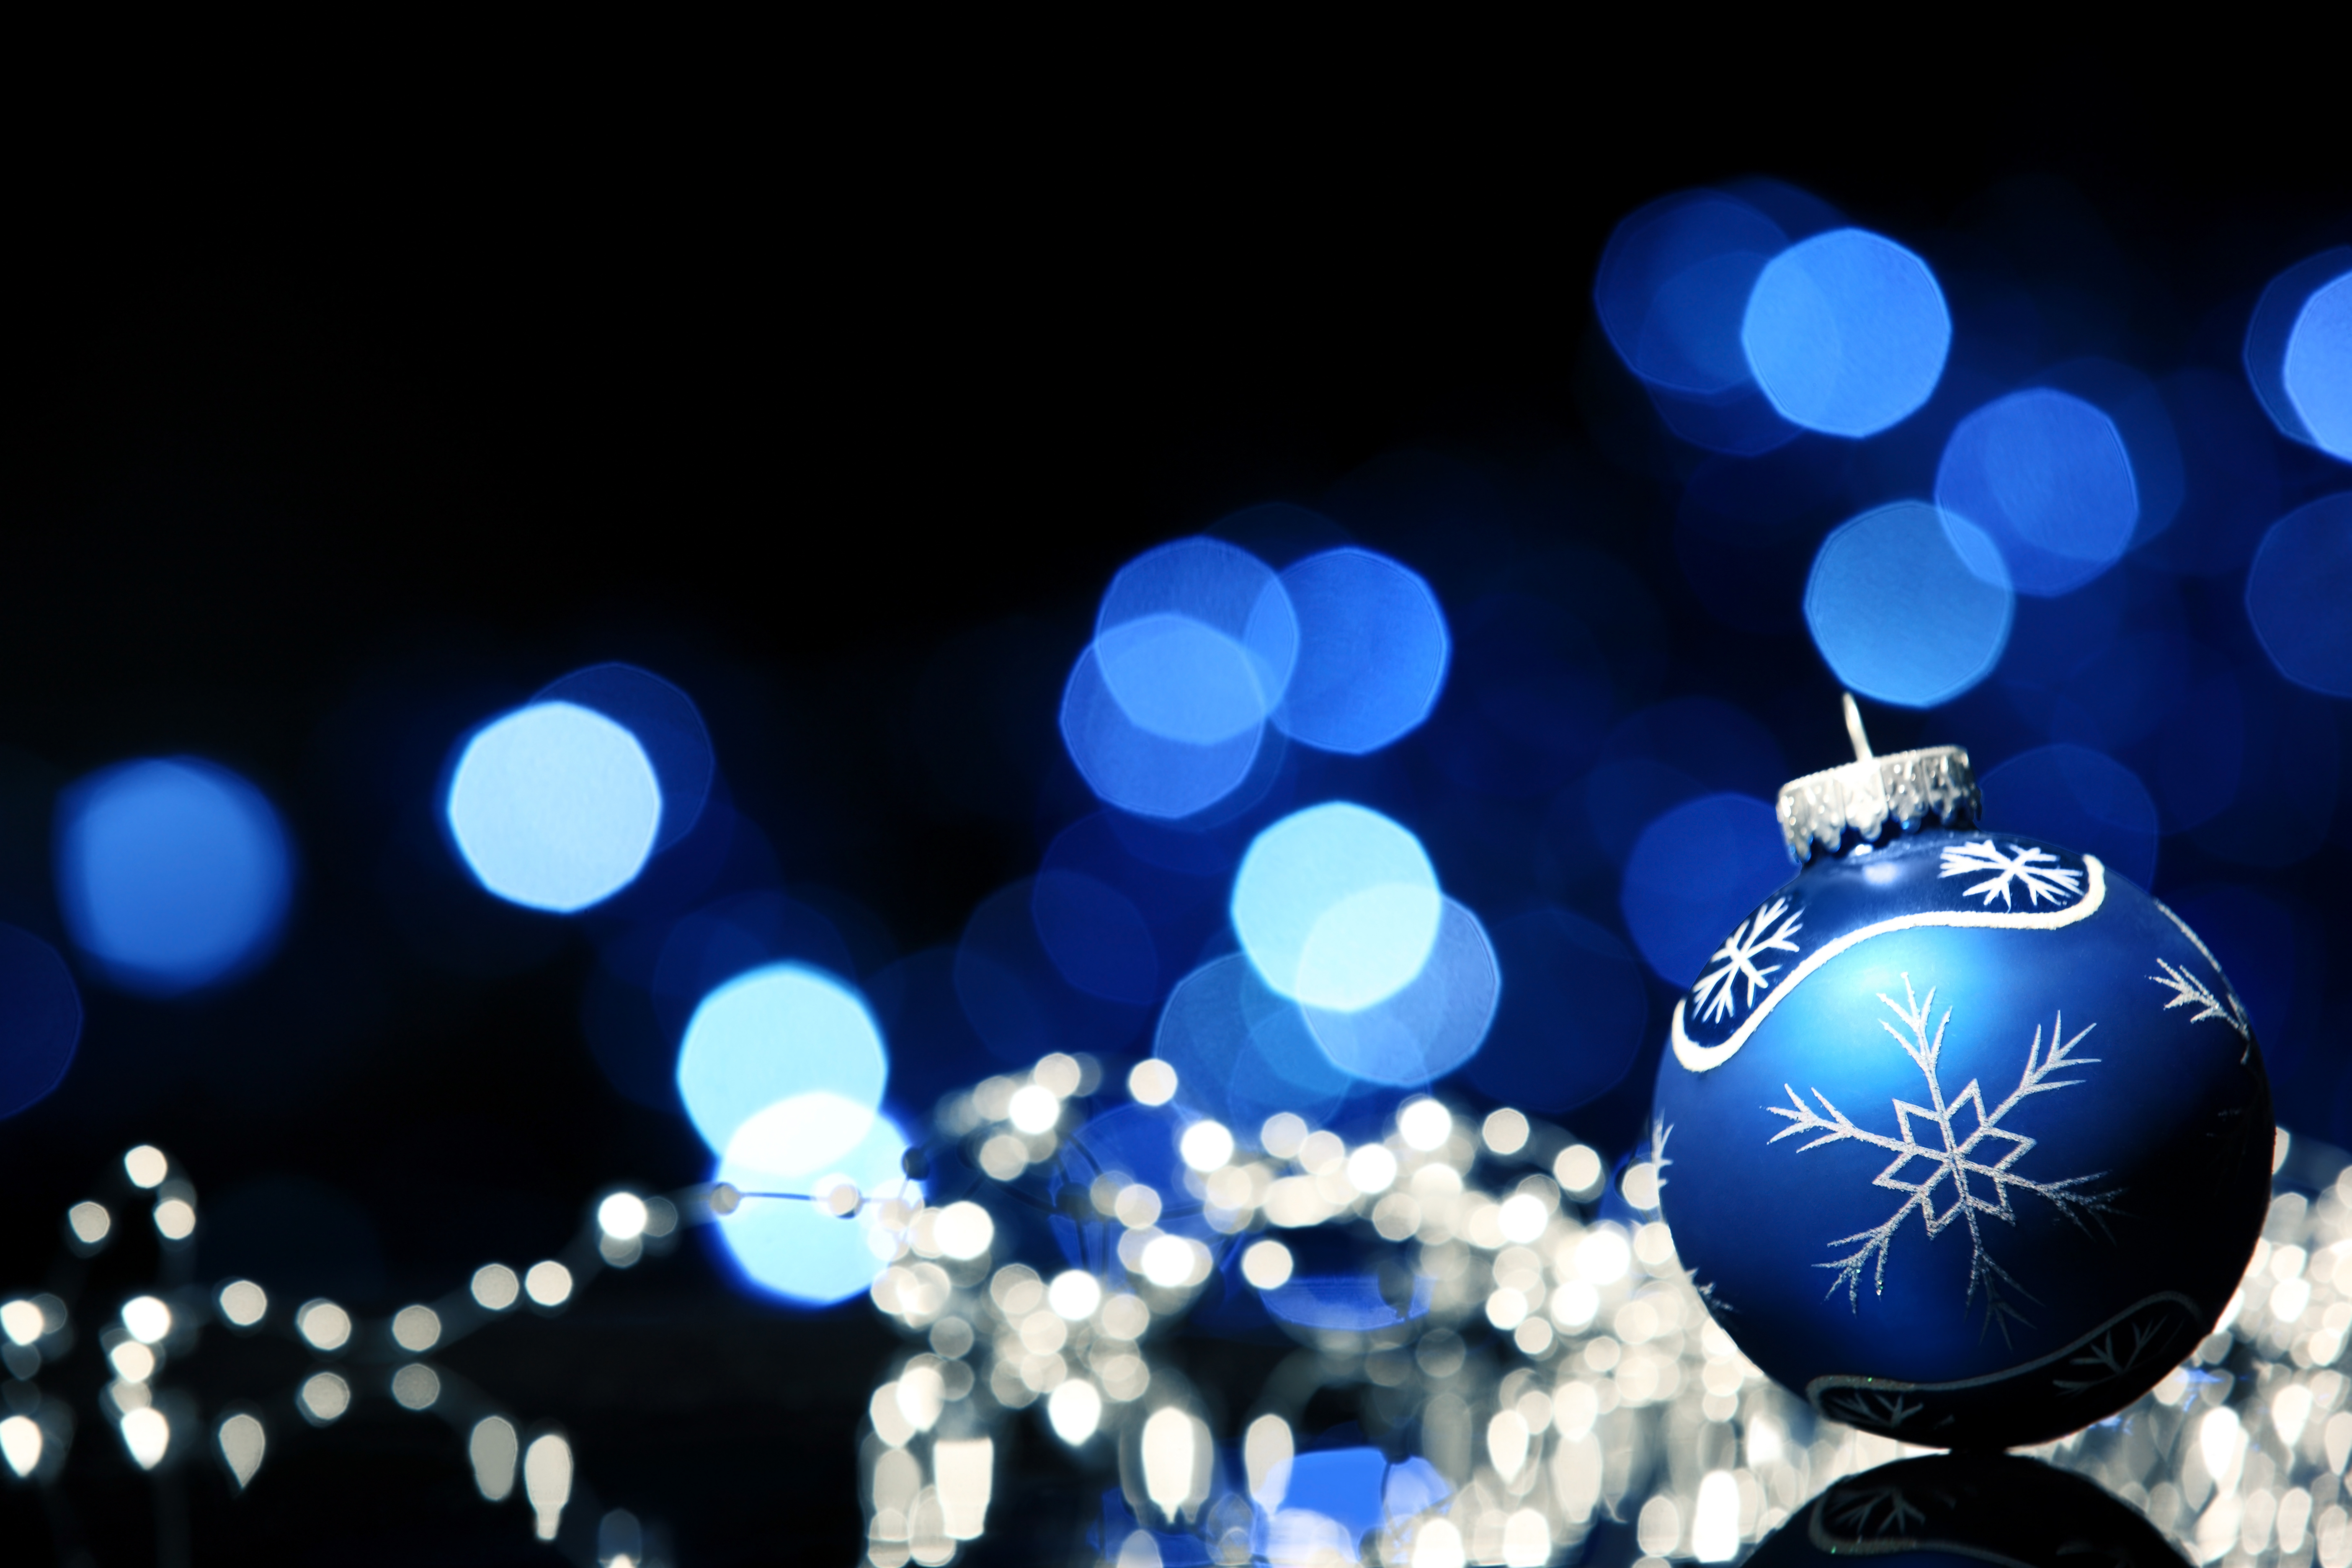 wallpapers id668466 - Christmas Blue